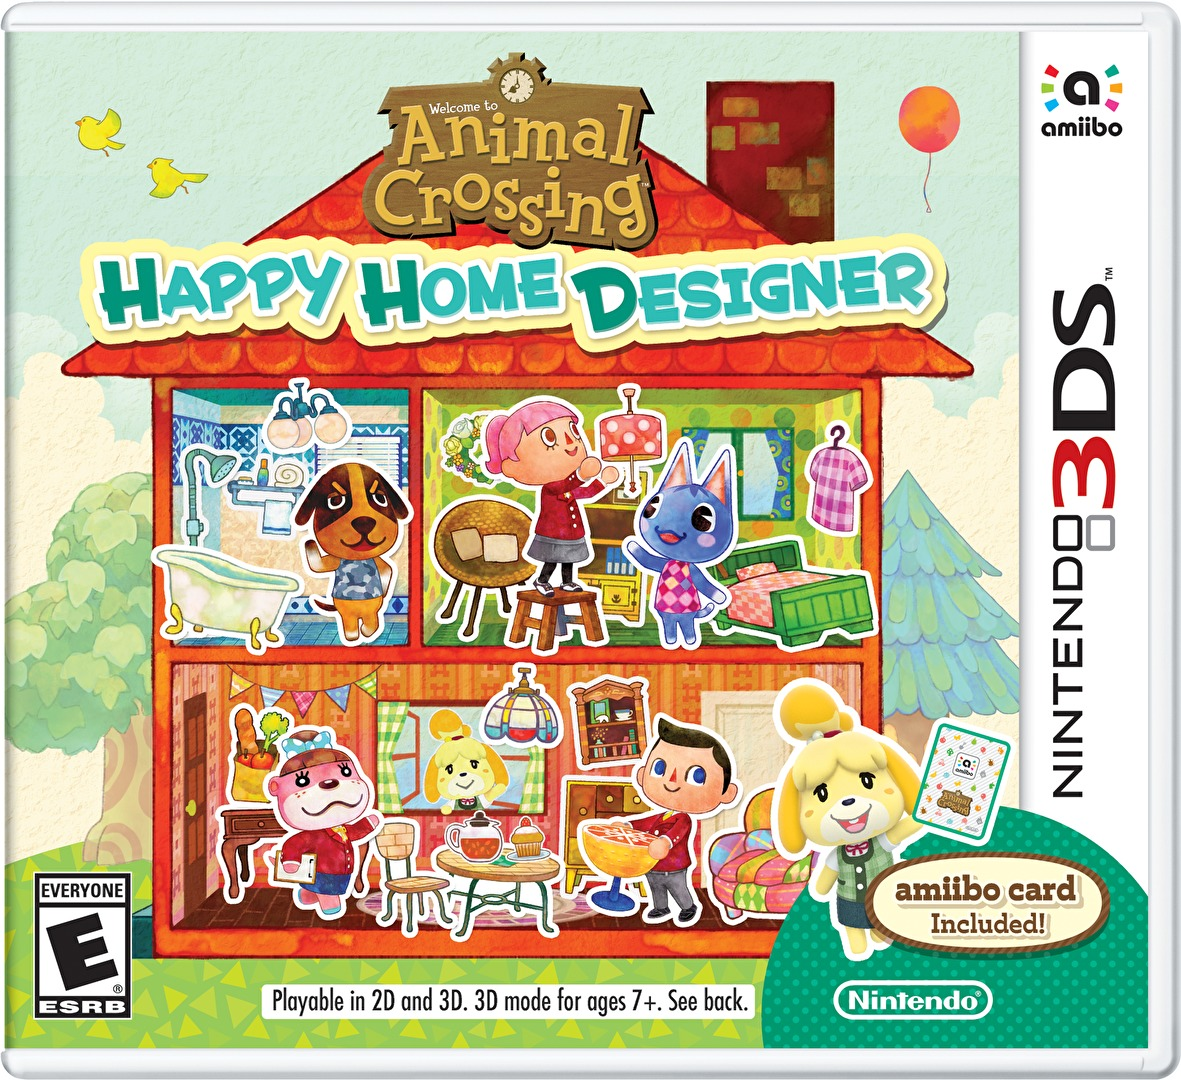 Animal Crossing  Happy Home Designer  3DS  ReviewSuperPhillip Central  9 27 15   10 4 15. Home Design Game. Home Design Ideas